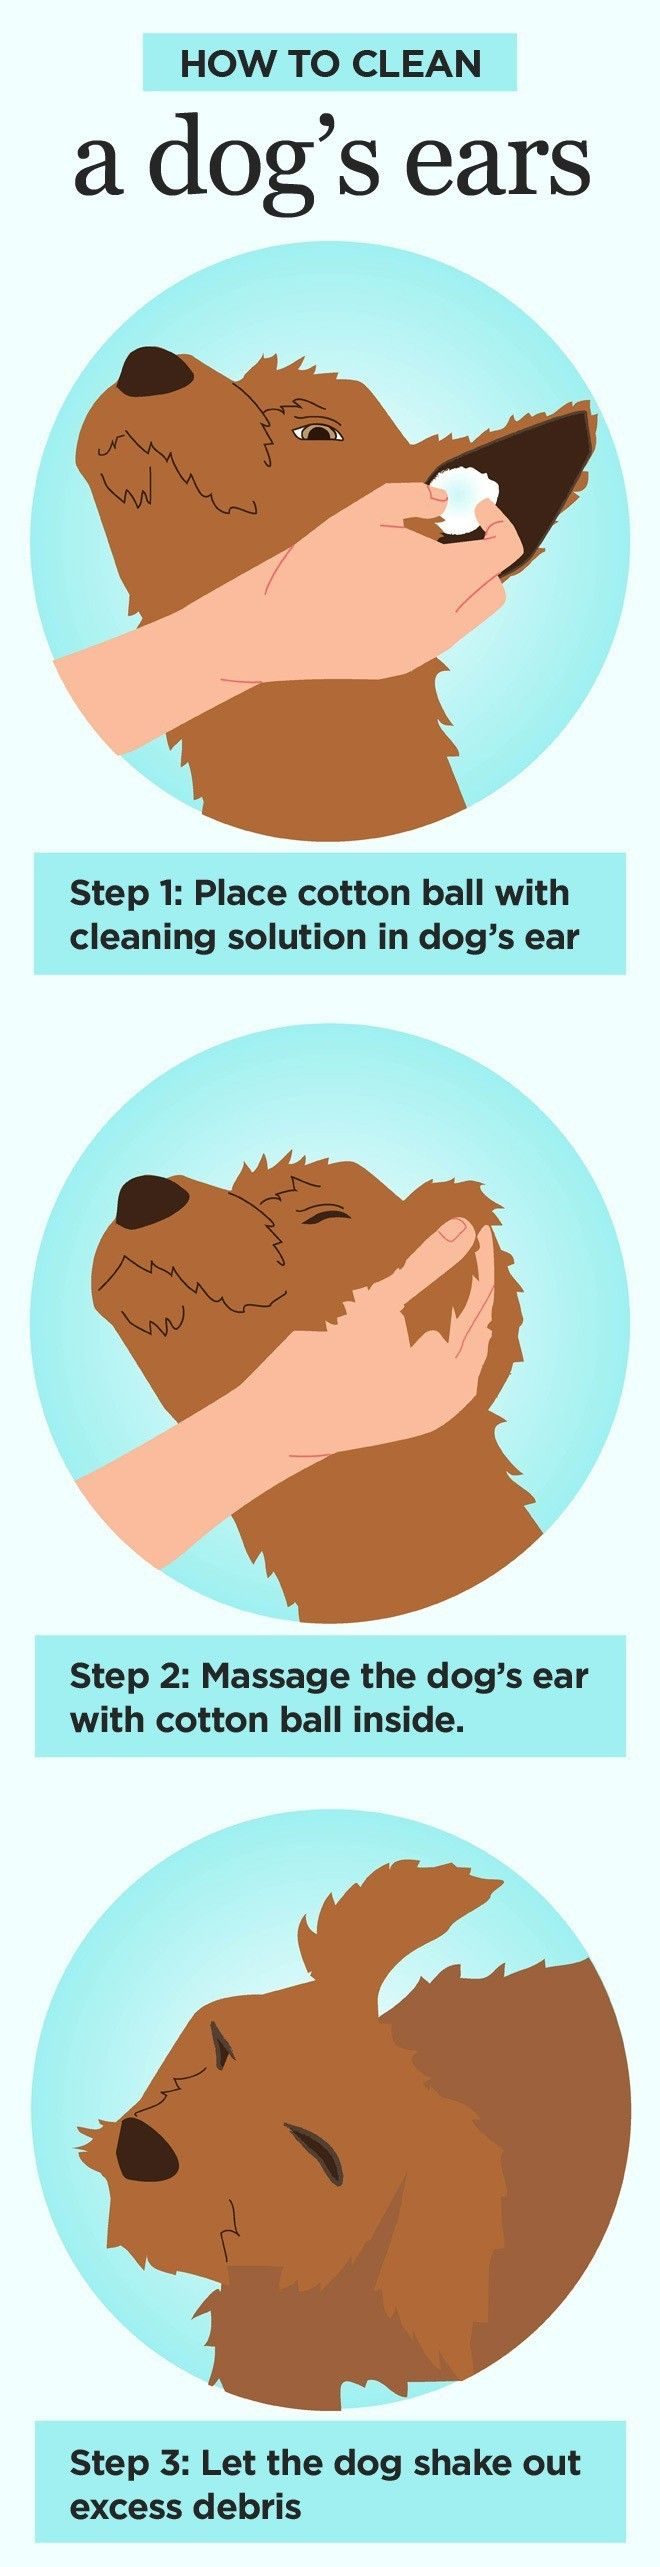 Dogs, especially those with long ears belonging to breeds such as English Cocker Spaniel, Bloodhound, Basset Hound, Miniature Schnauzer and so on, are prone to the development of ear infections. There are various types of ear infections, but the ones with mites are the most frequent ones.In order to find ...